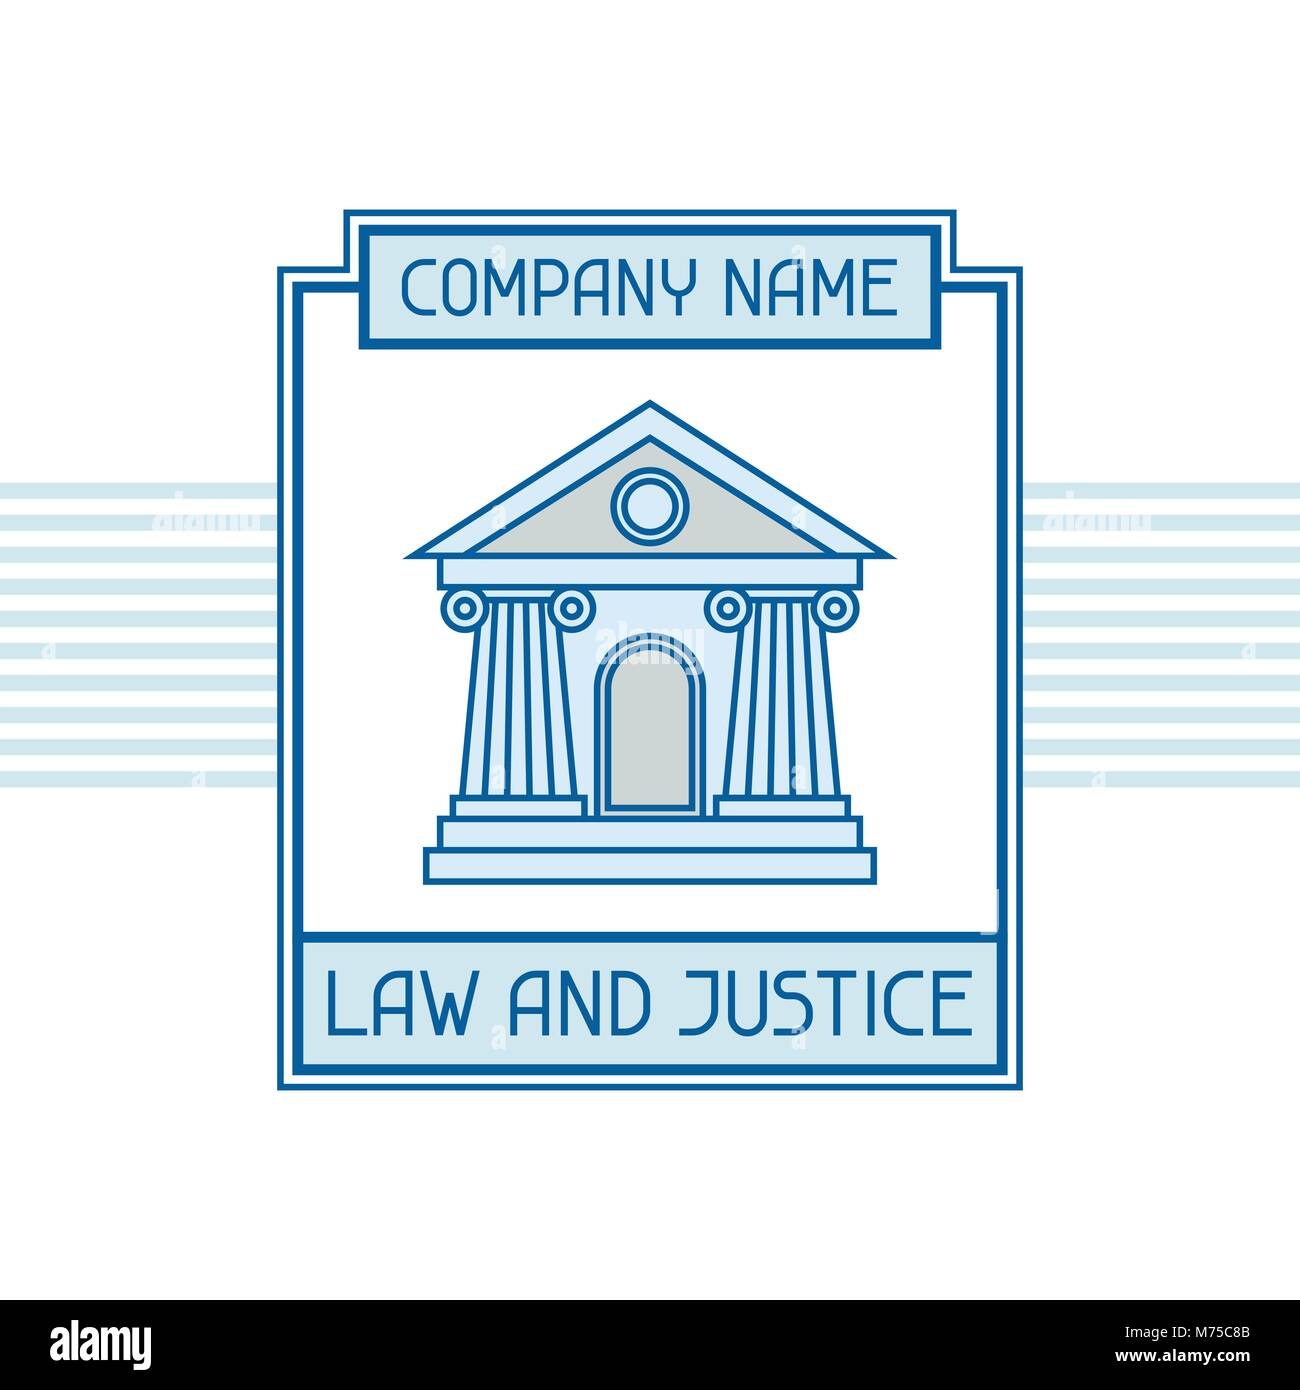 Law and justice company name concept emblem - Stock Vector